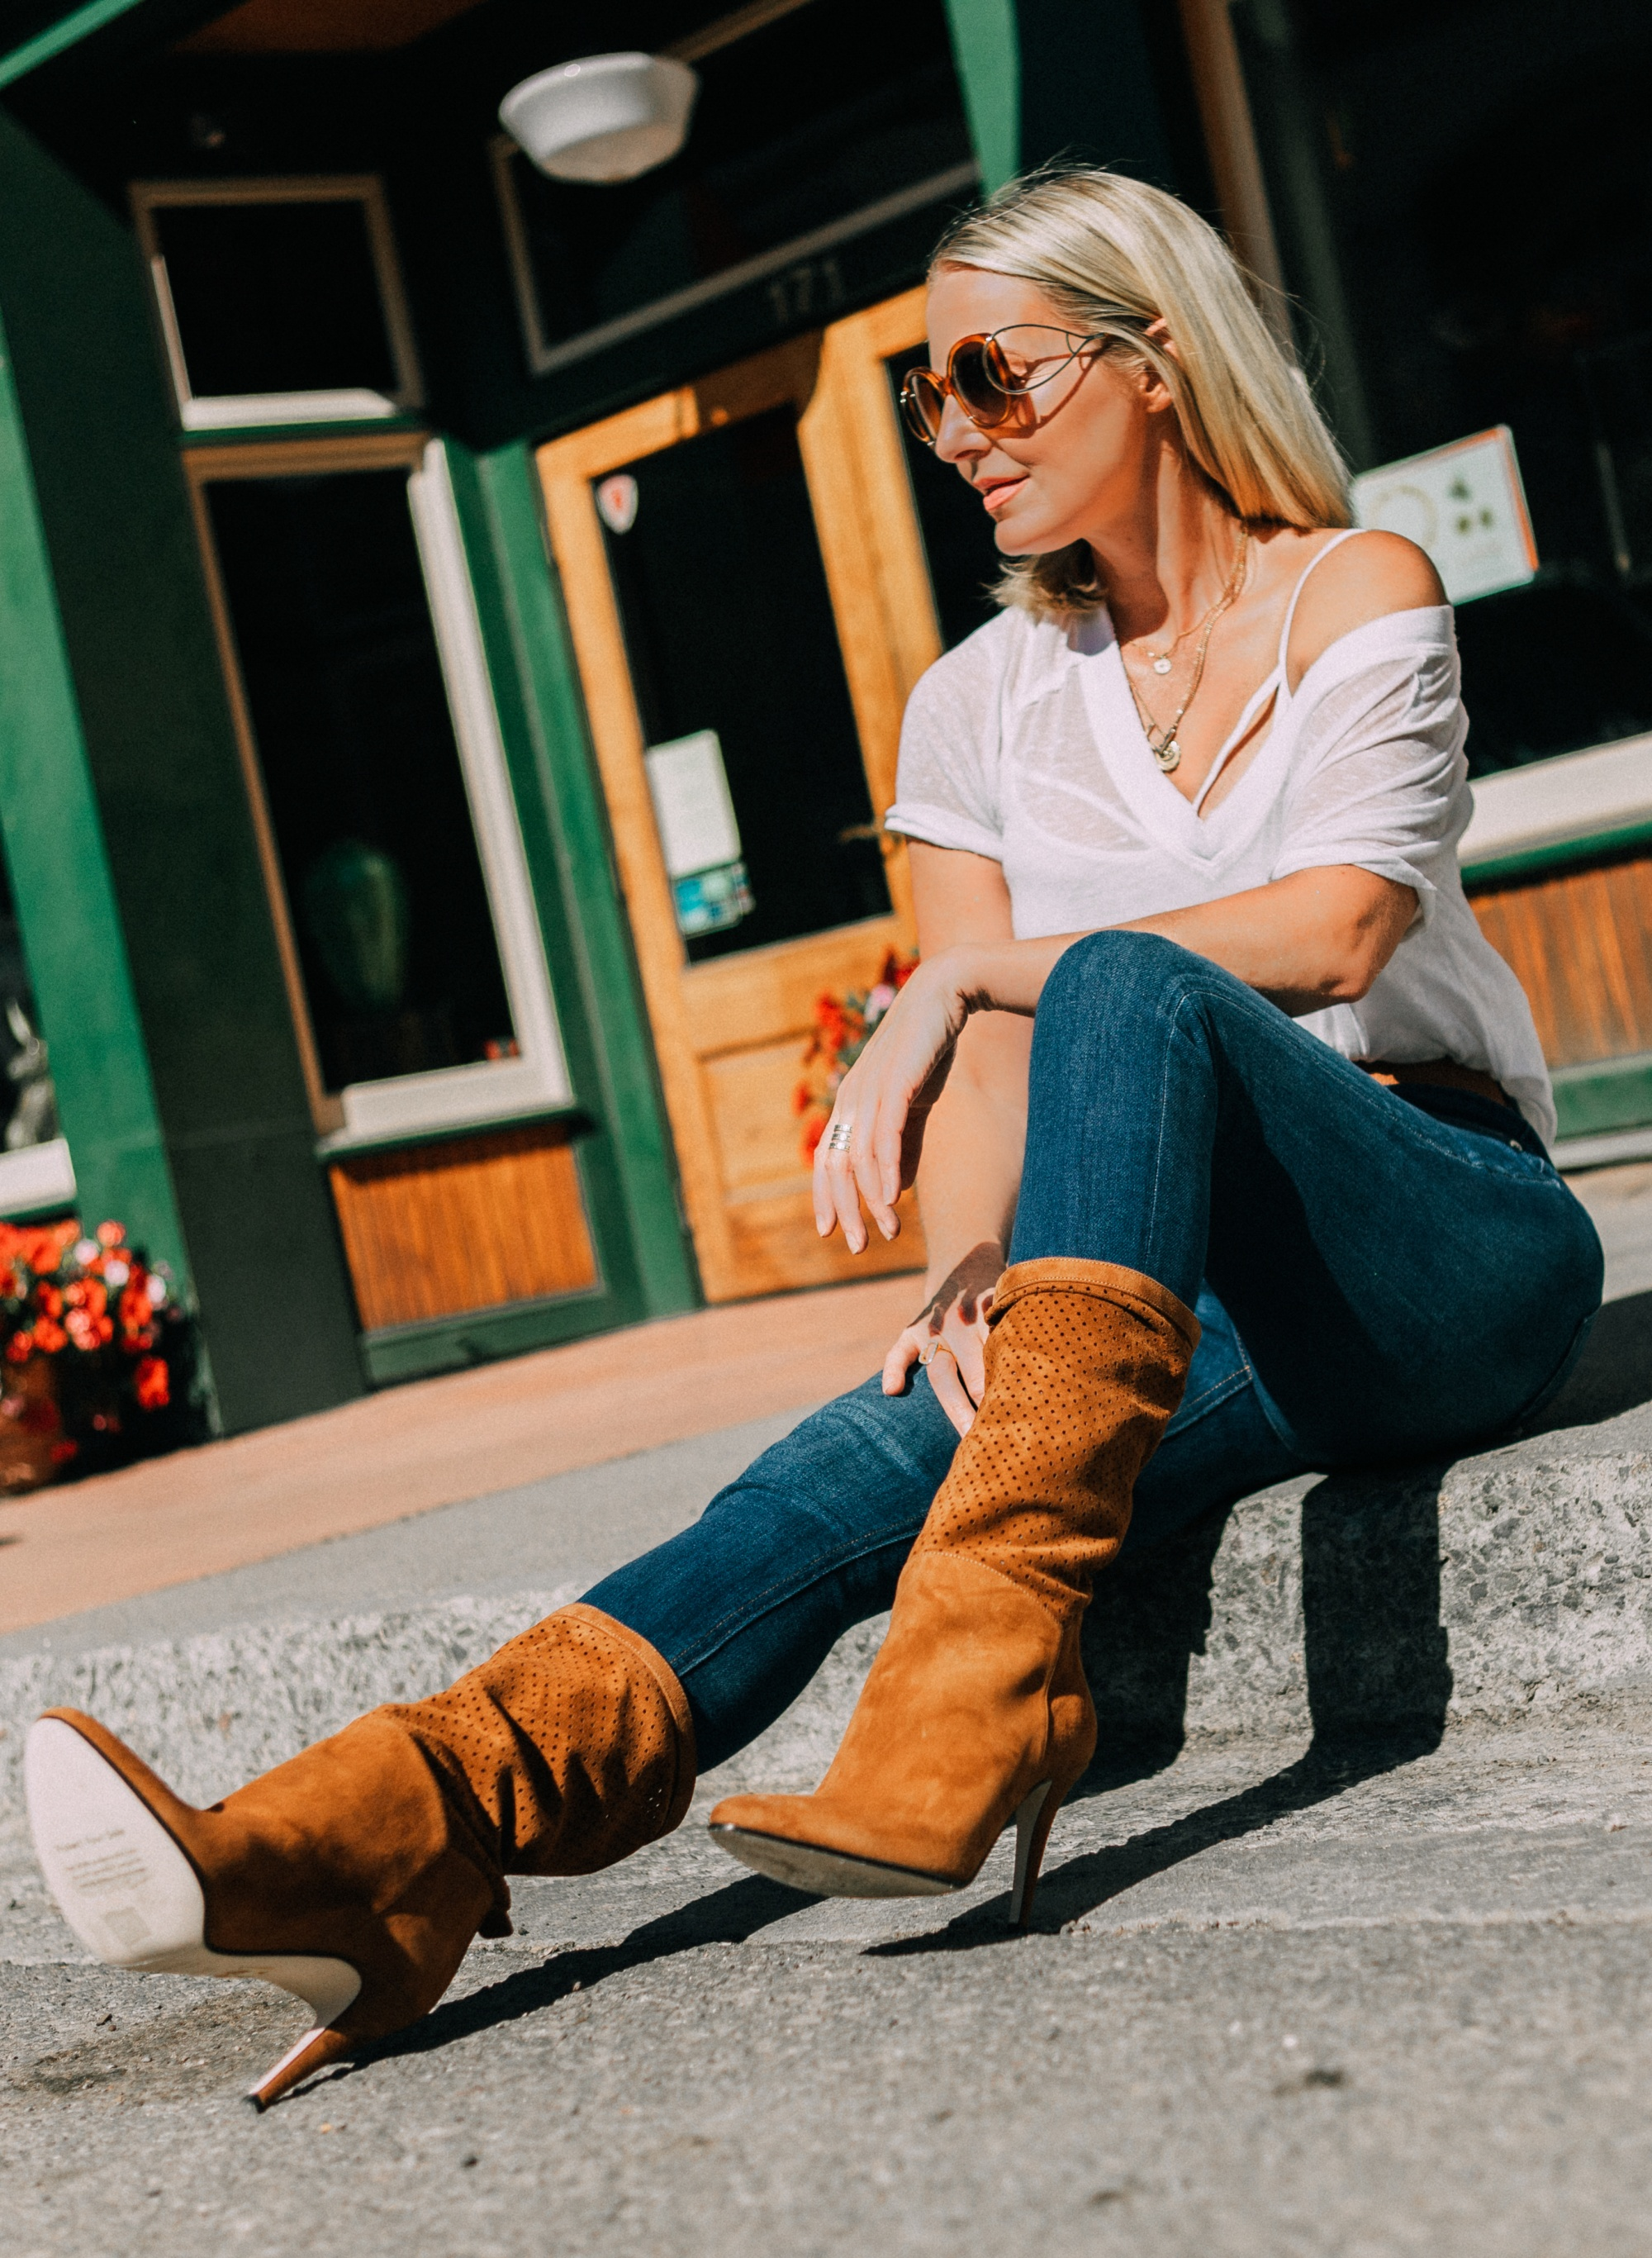 Tamara Mellon, Fashion blogger Erin Busbee of BusbeeStyle.com wearing dark was skinny jeans and white tee with stunning Tamara Mellon perforated brown boots in Telluride, Colorado